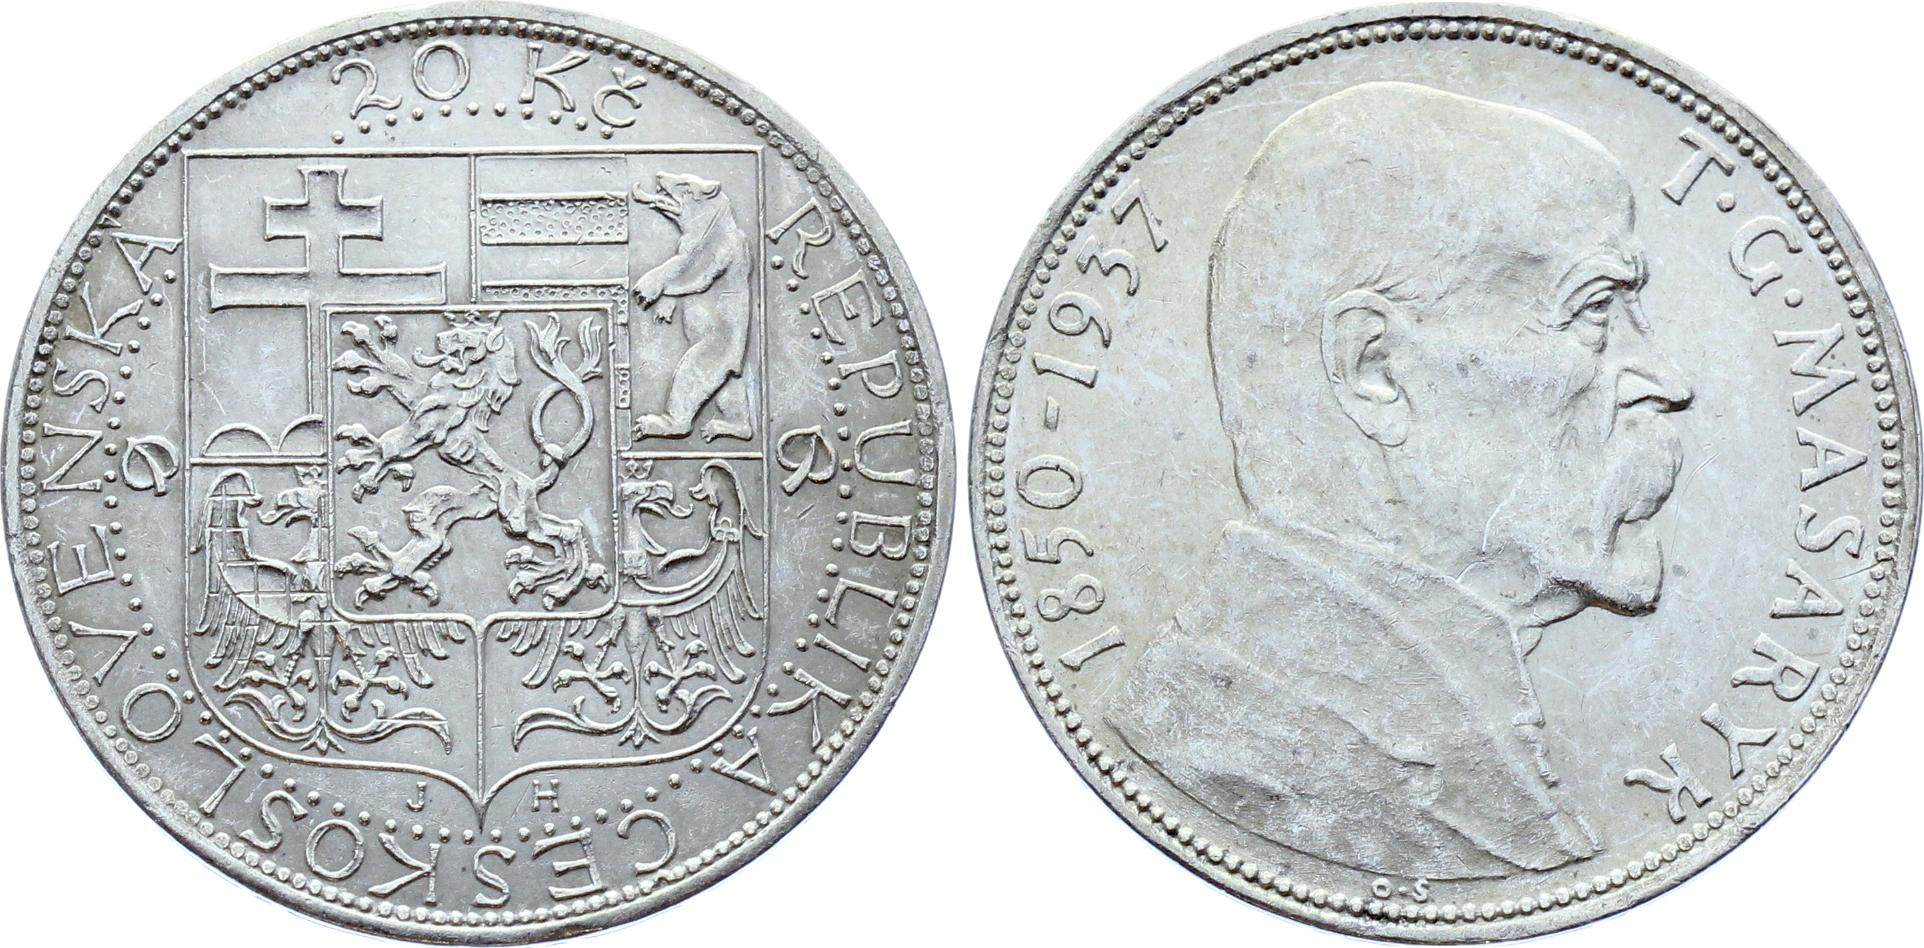 Czechoslovakia 20 Korun 1937 | Katz Coins Notes & Supplies Corp